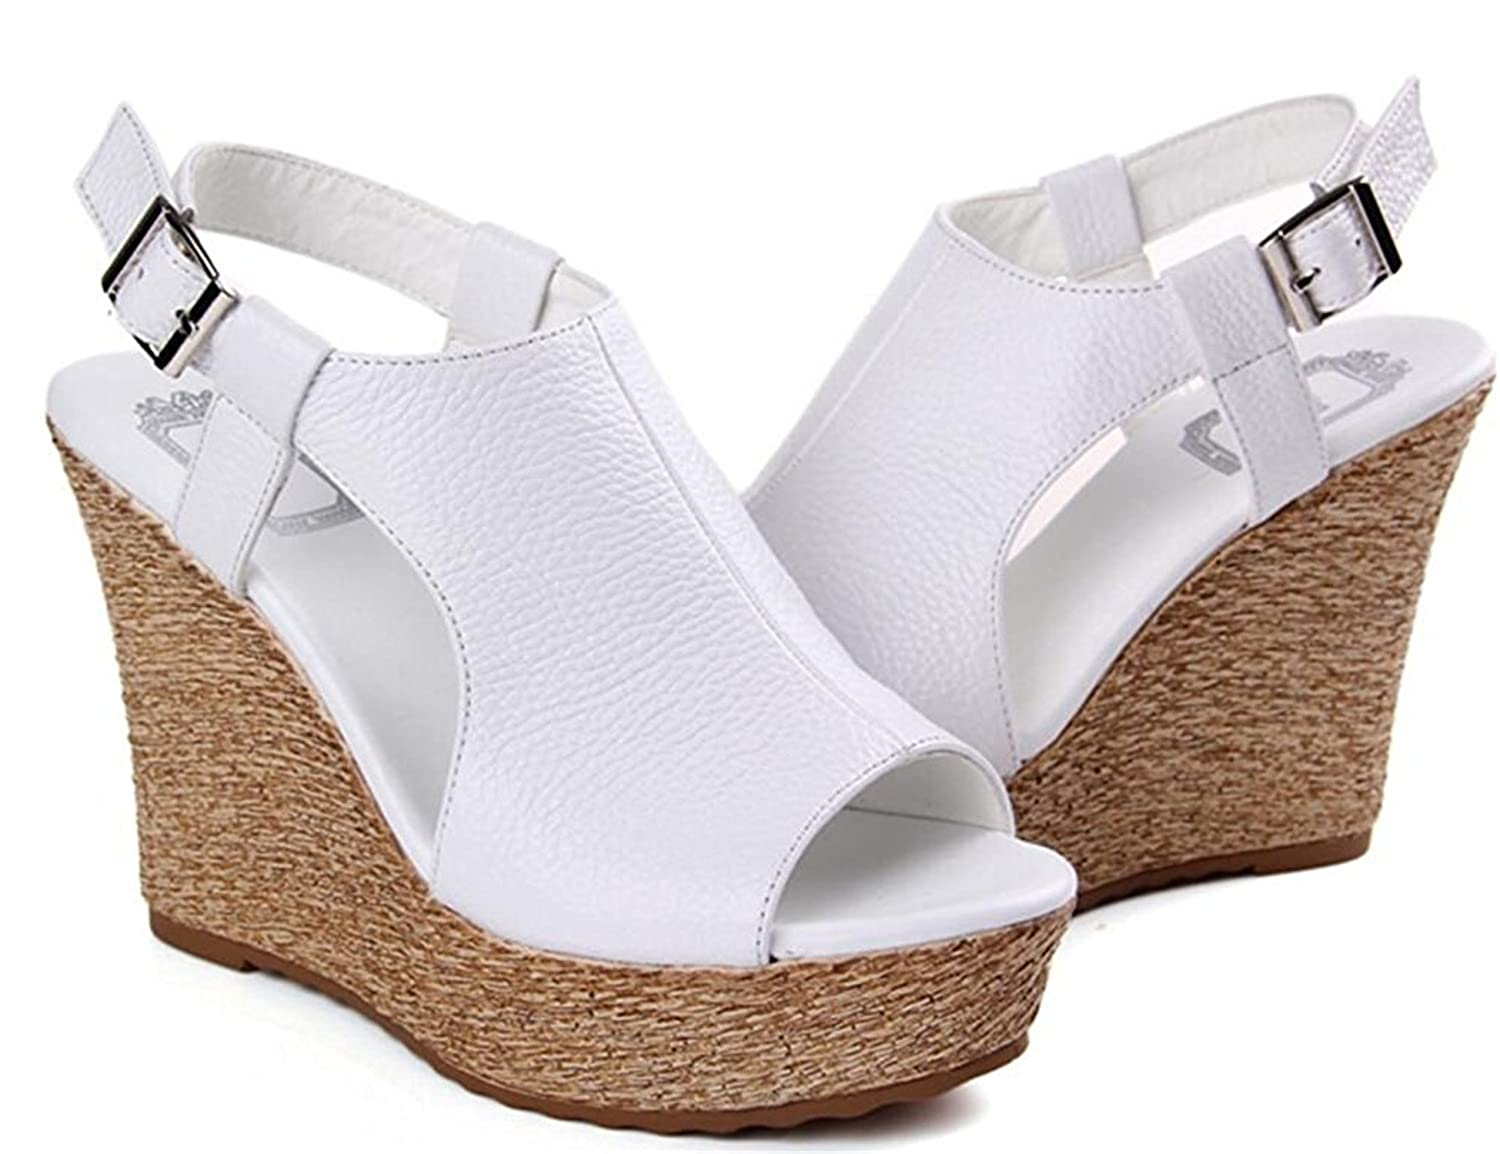 Gimekiss Pumps Womens Leather Simple Gladiator Platform High Heels Wedges Casual Sandals White7 B M US